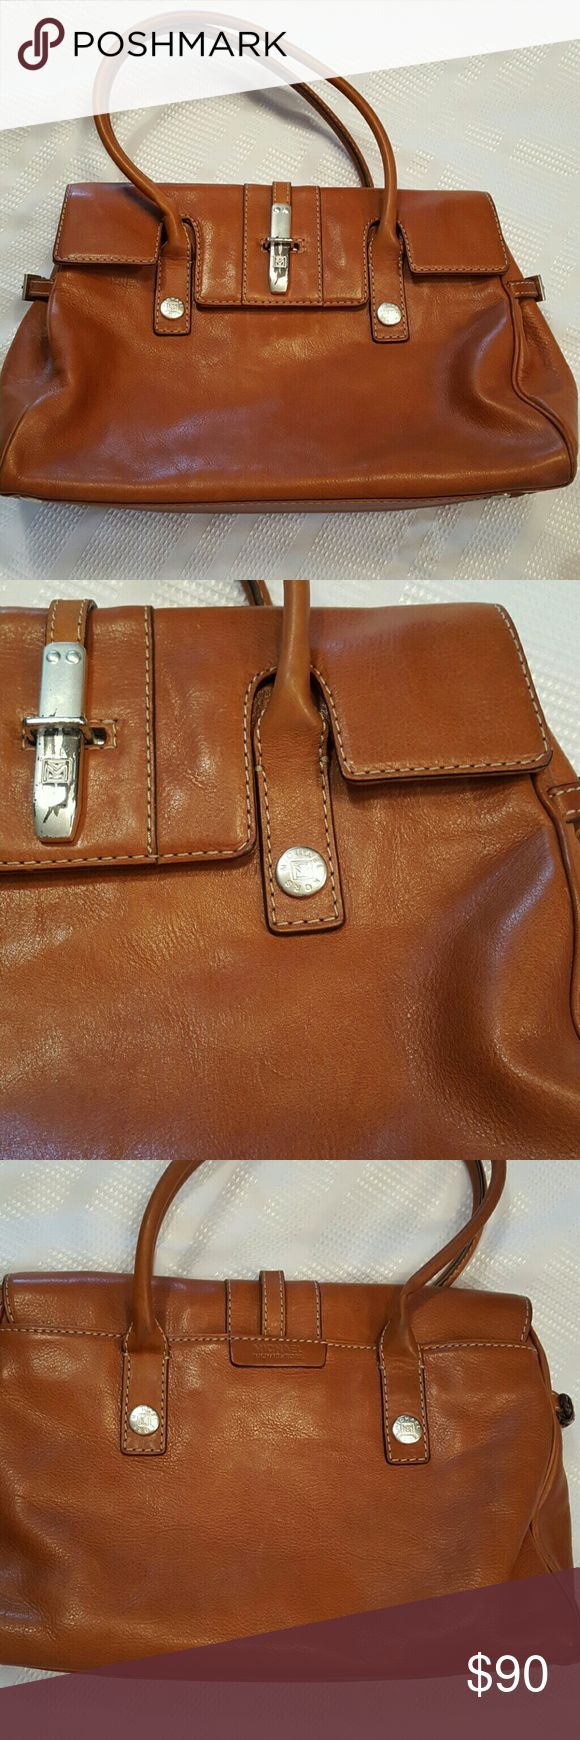 """VINTAGEMichael Kors Leather Shoulder Bag Gorgeous Tan/Brown Supple Leather Purse from Michael Kors.  Authentic and leather us gorgeous.  EUC overall. A few minor marks on the leather but barely noticeable.  Metal sliding clasp has tarnish. That is where the """"wear"""" is.  Inside is a gorgeous linen lining in perfect shape.  3 sections, one zippered and Interior zipper pocket. 1 outer pocket.  Smoke free, pet free home. 6in strap drop.  Adjustable buckles on sides. Michael Kors Bags"""